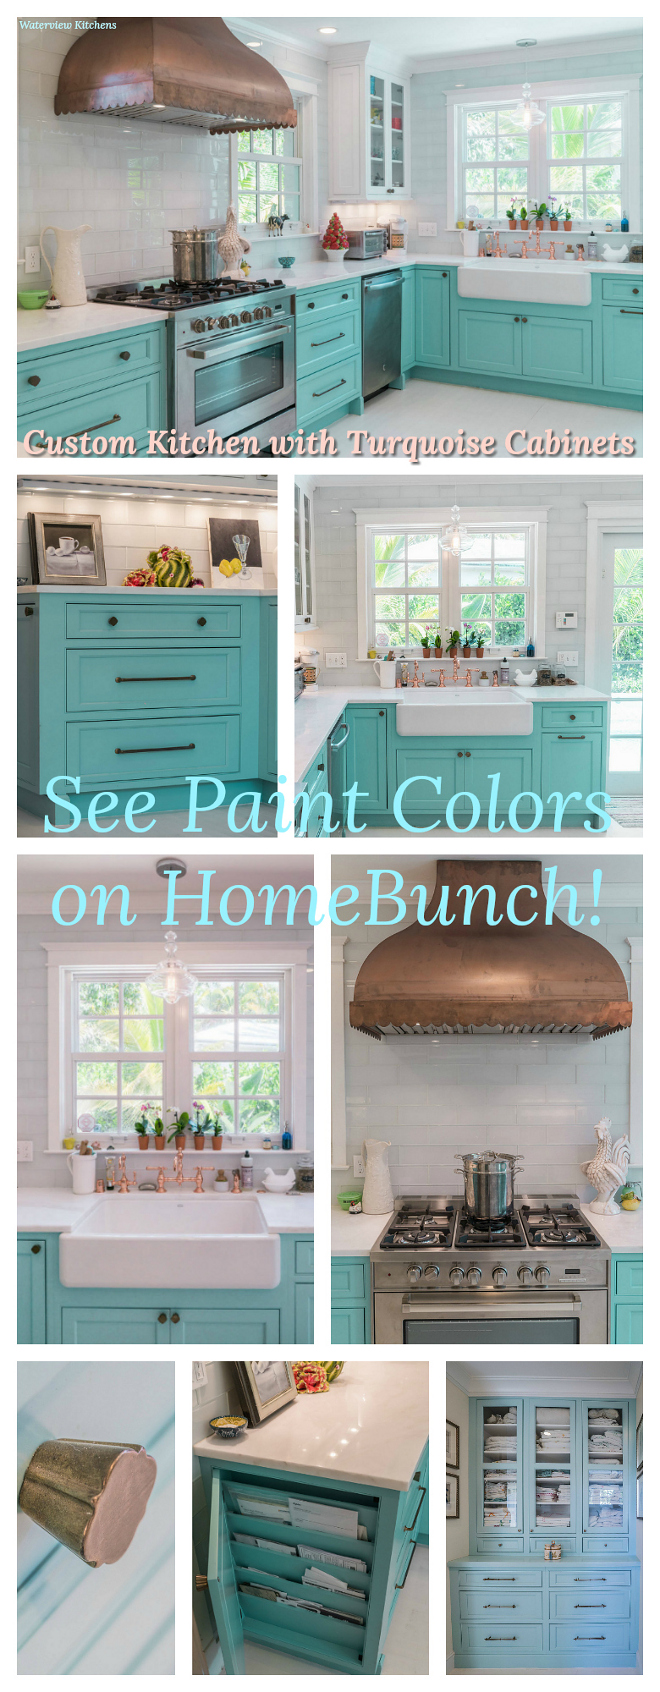 Turquoise Kitchen Design sources on Home Bunch